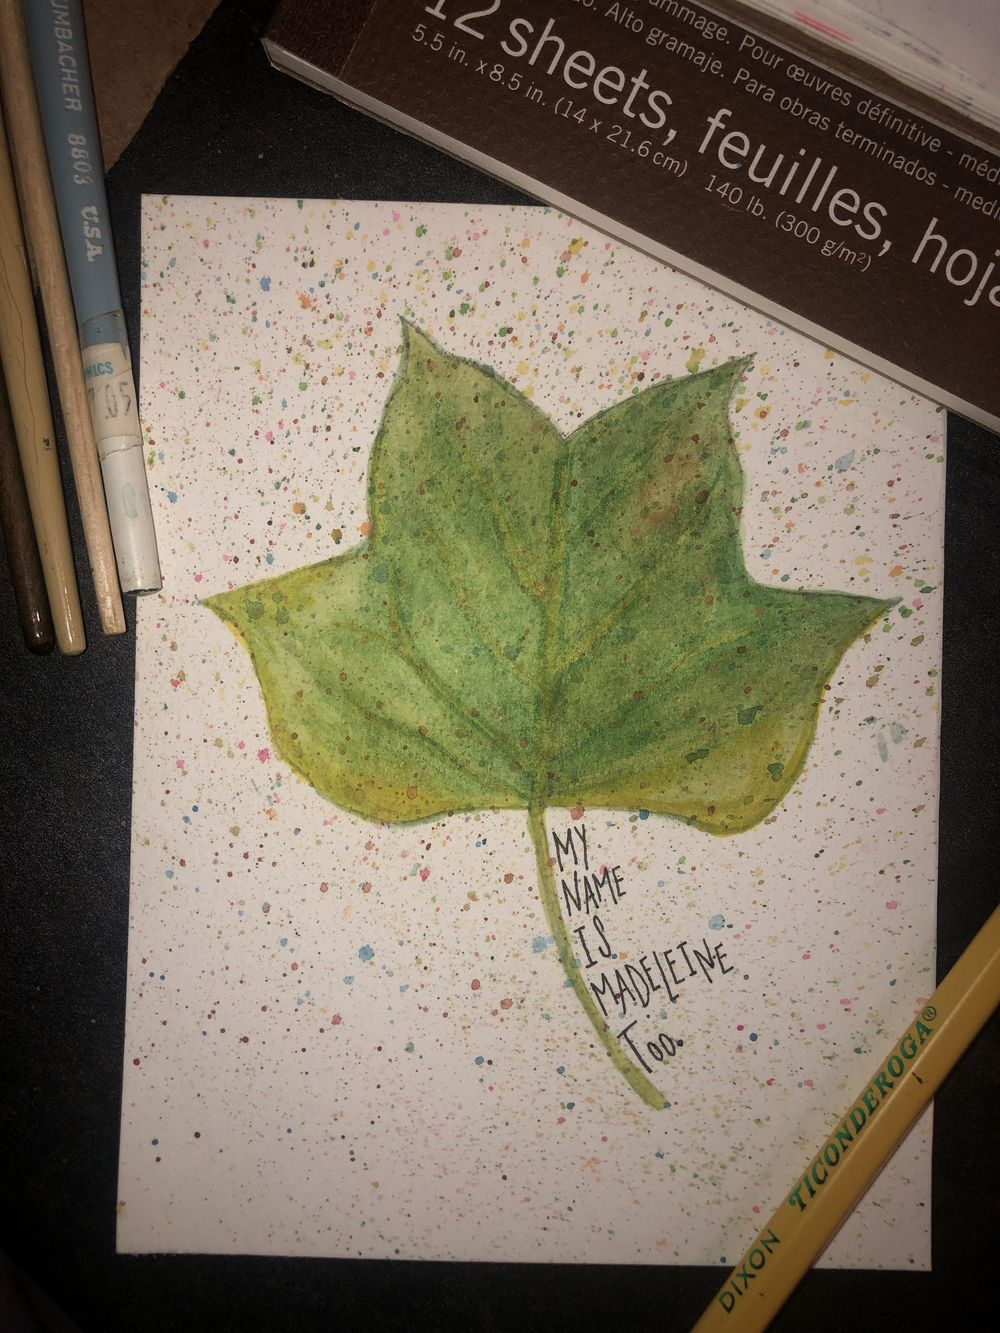 loose leaves - image 2 - student project